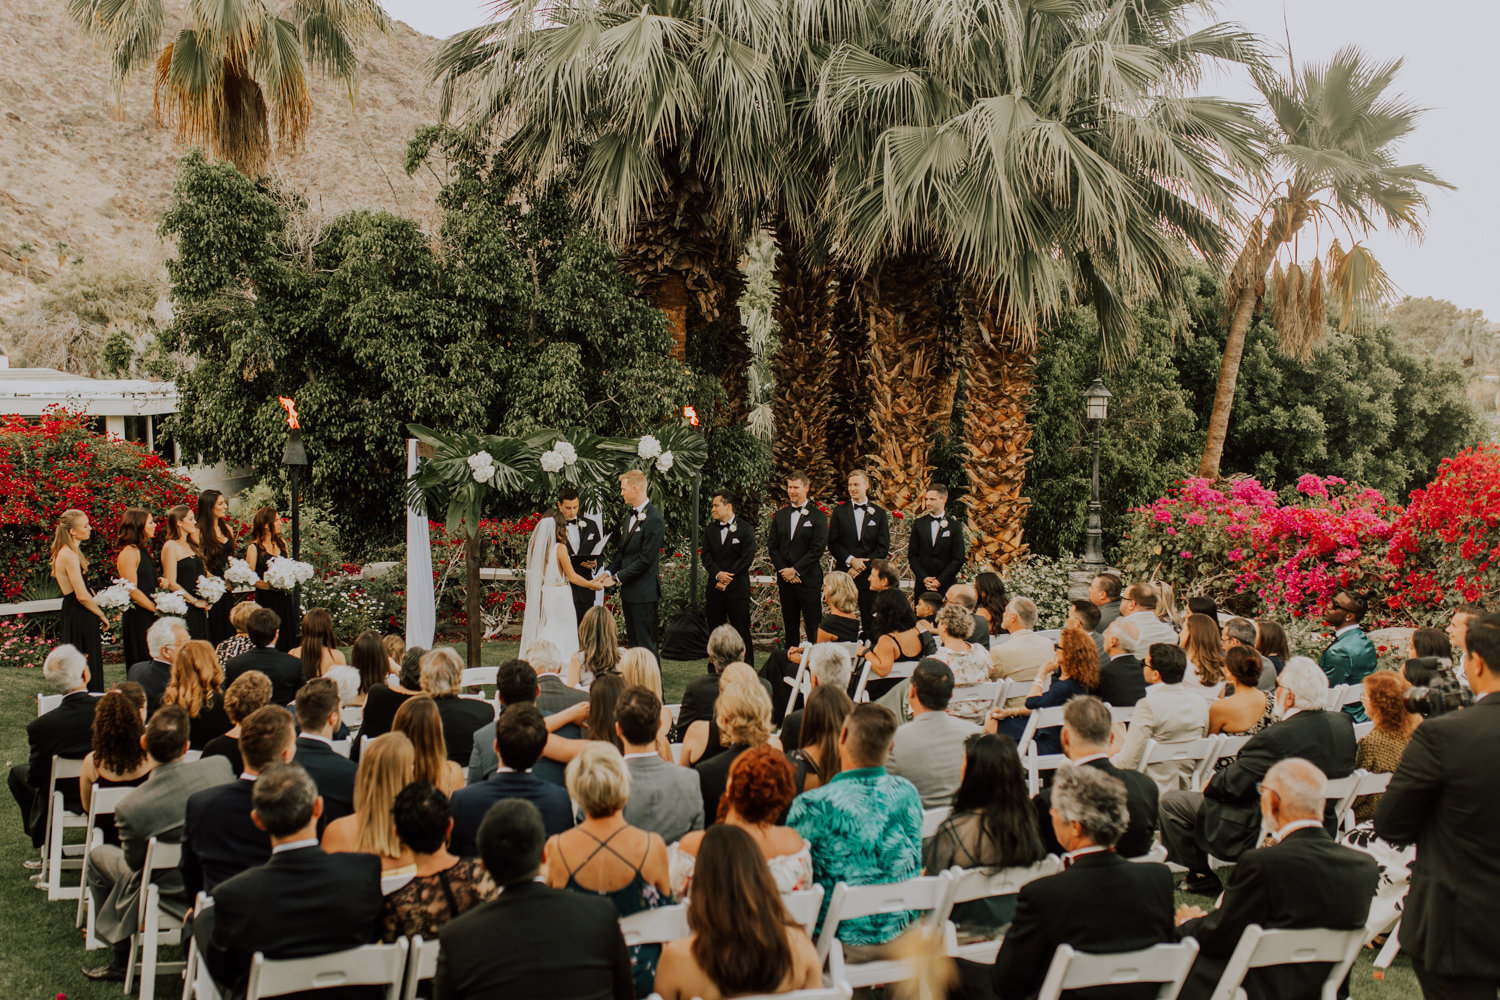 Brianna Broyles_Spencers Wedding_Palm Springs_Wedding Photographer-78